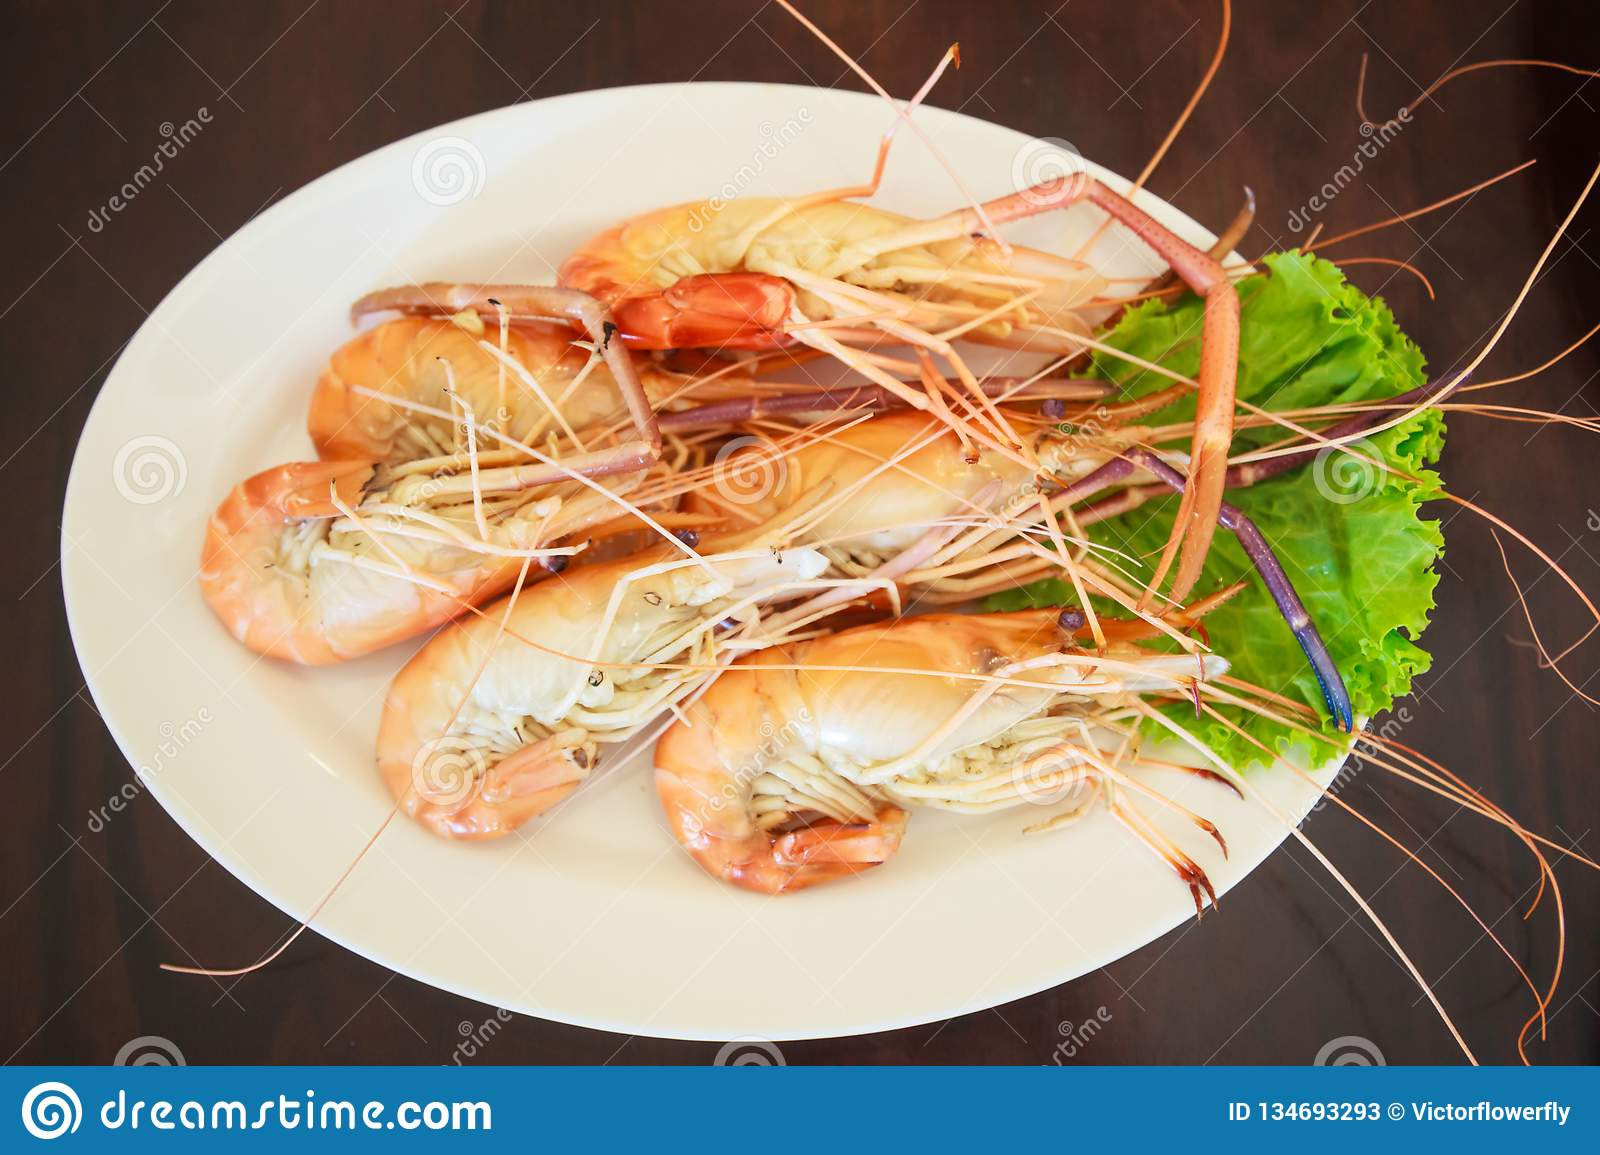 Steamed Seafood from sea market, Fresh Tasty Appetizing Cooked Tiger Prawns on Wooden Table Background. Food, Nutrition, Allergy,